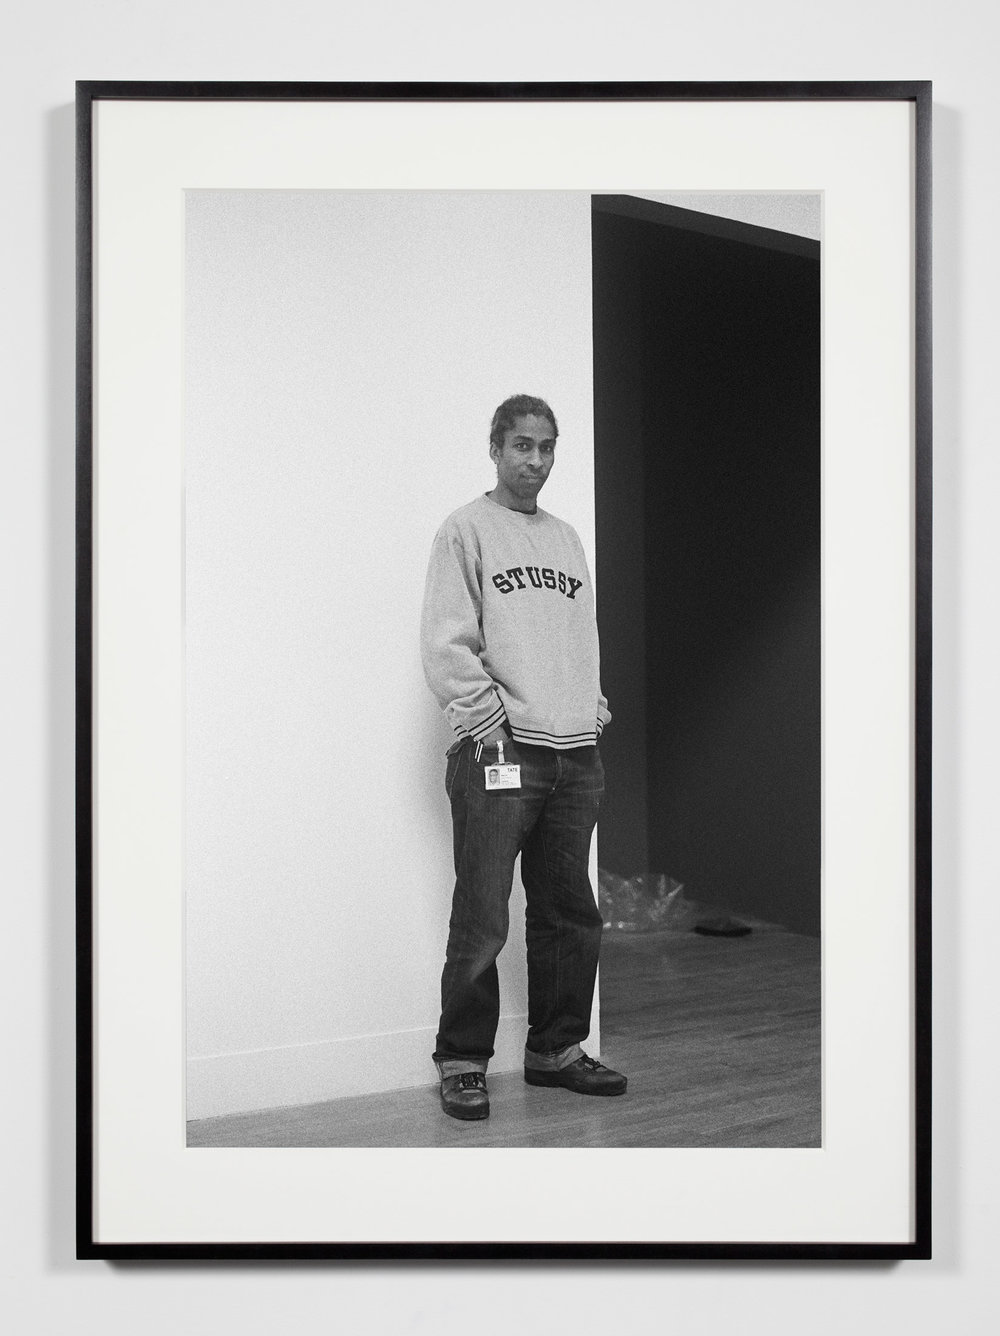 Museum Preparator, London, United Kingdom, January 30, 2009   2011  Epson Ultrachrome K3 archival ink jet print on Hahnemühle Photo Rag paper  36 3/8 x 26 3/8 inches   Industrial Portraits, 2008–    A Diagram of Forces, 2011